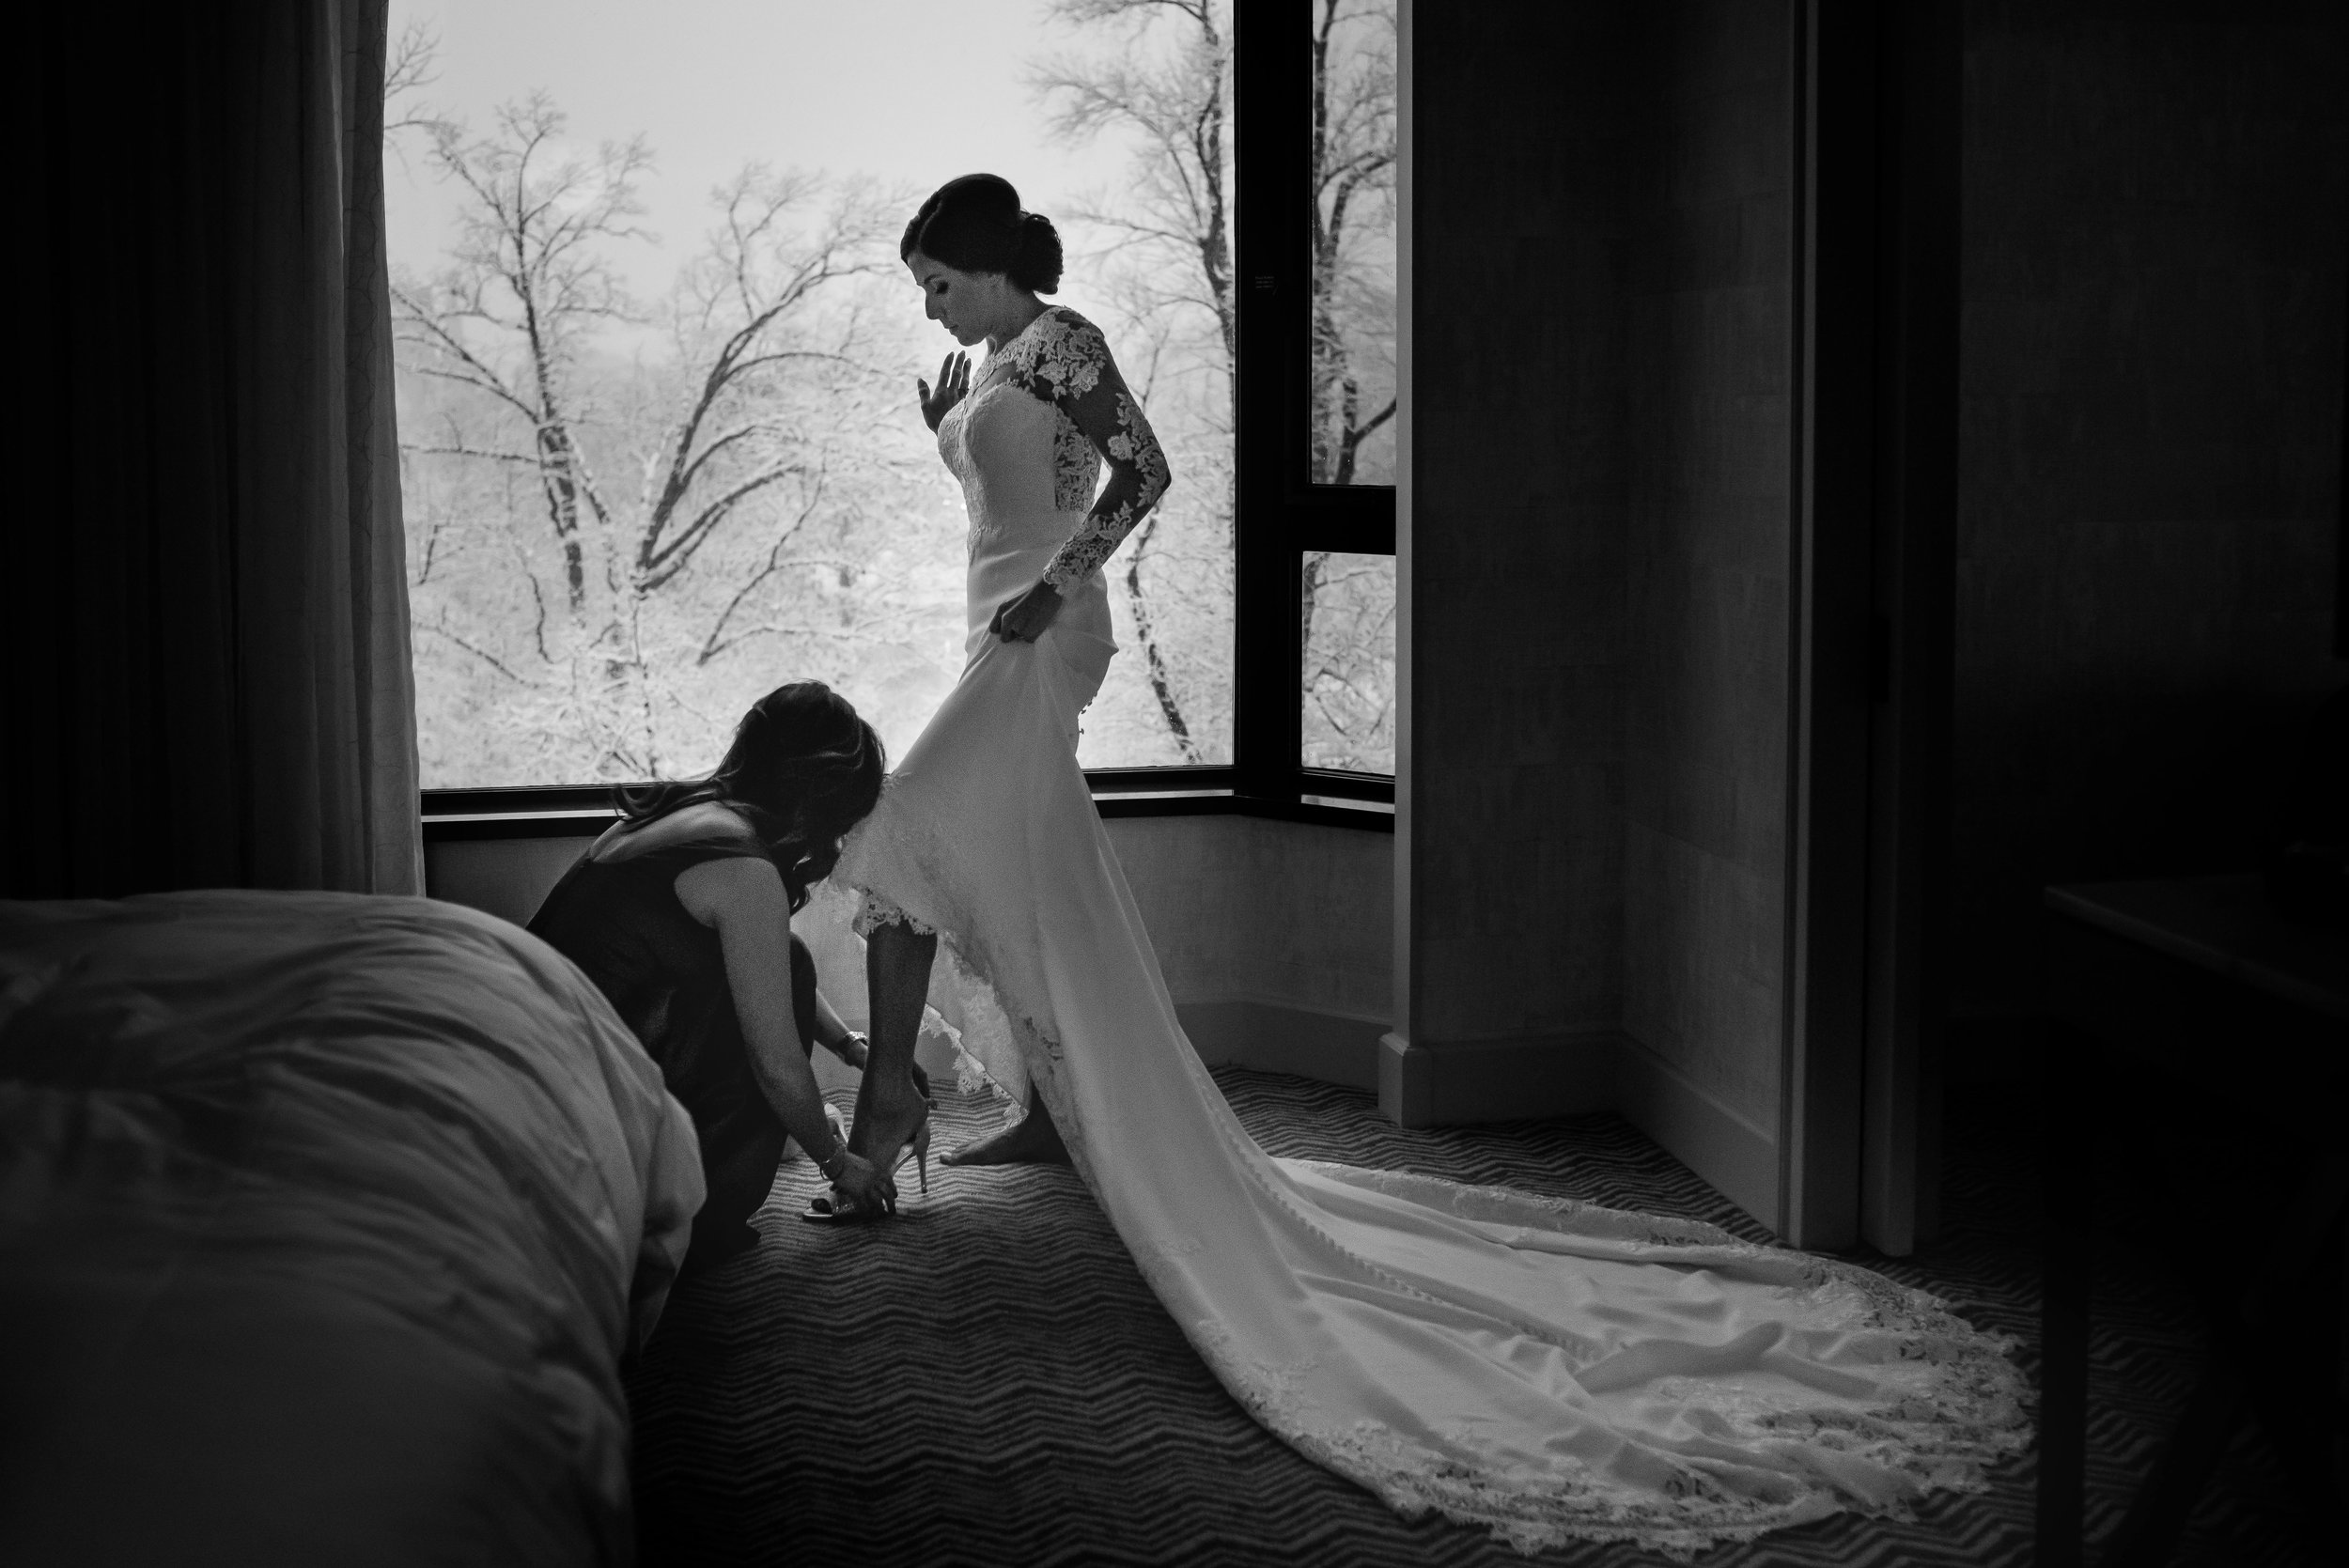 Devin-Dan-Winter-Wedding-Boston- Wedding-Destination-Wedding-Wedding-Planner-Nicole-Simeral-Getting-Ready